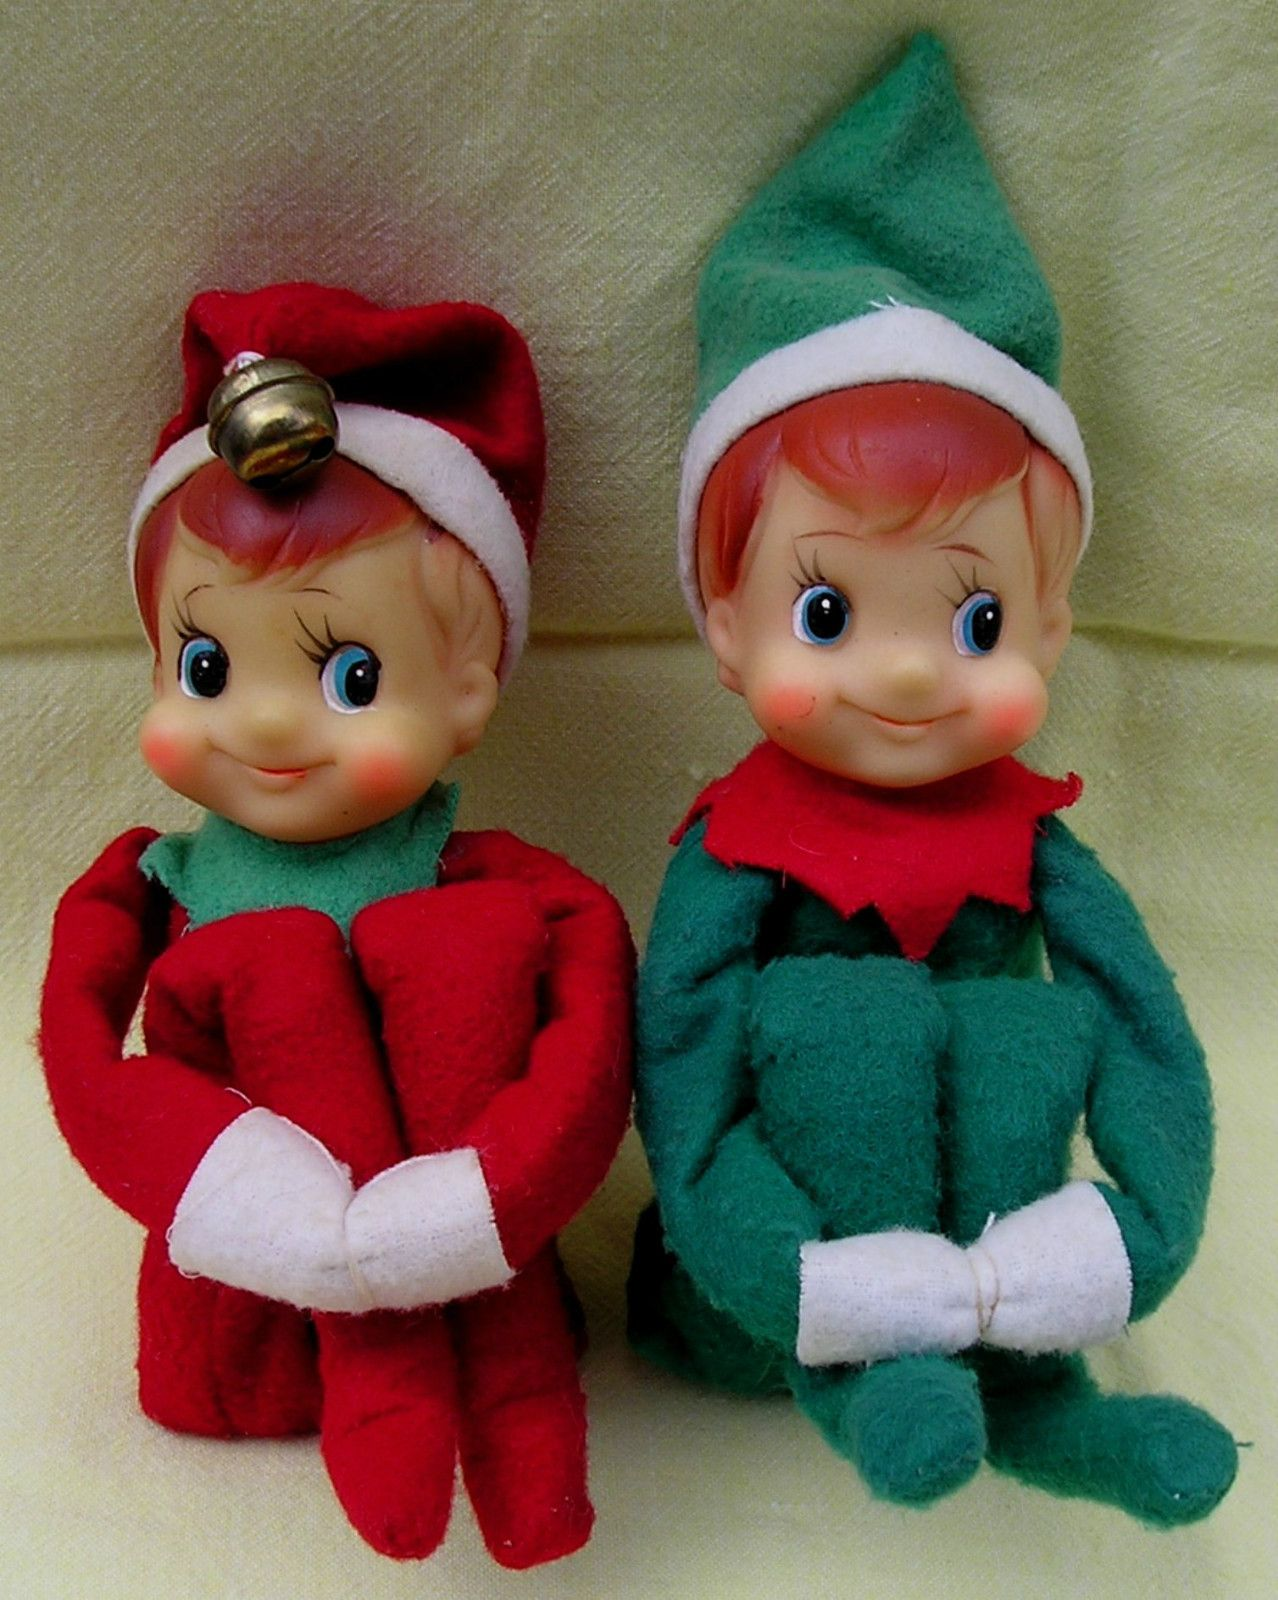 The original elf on the shelf fun with elves pinterest